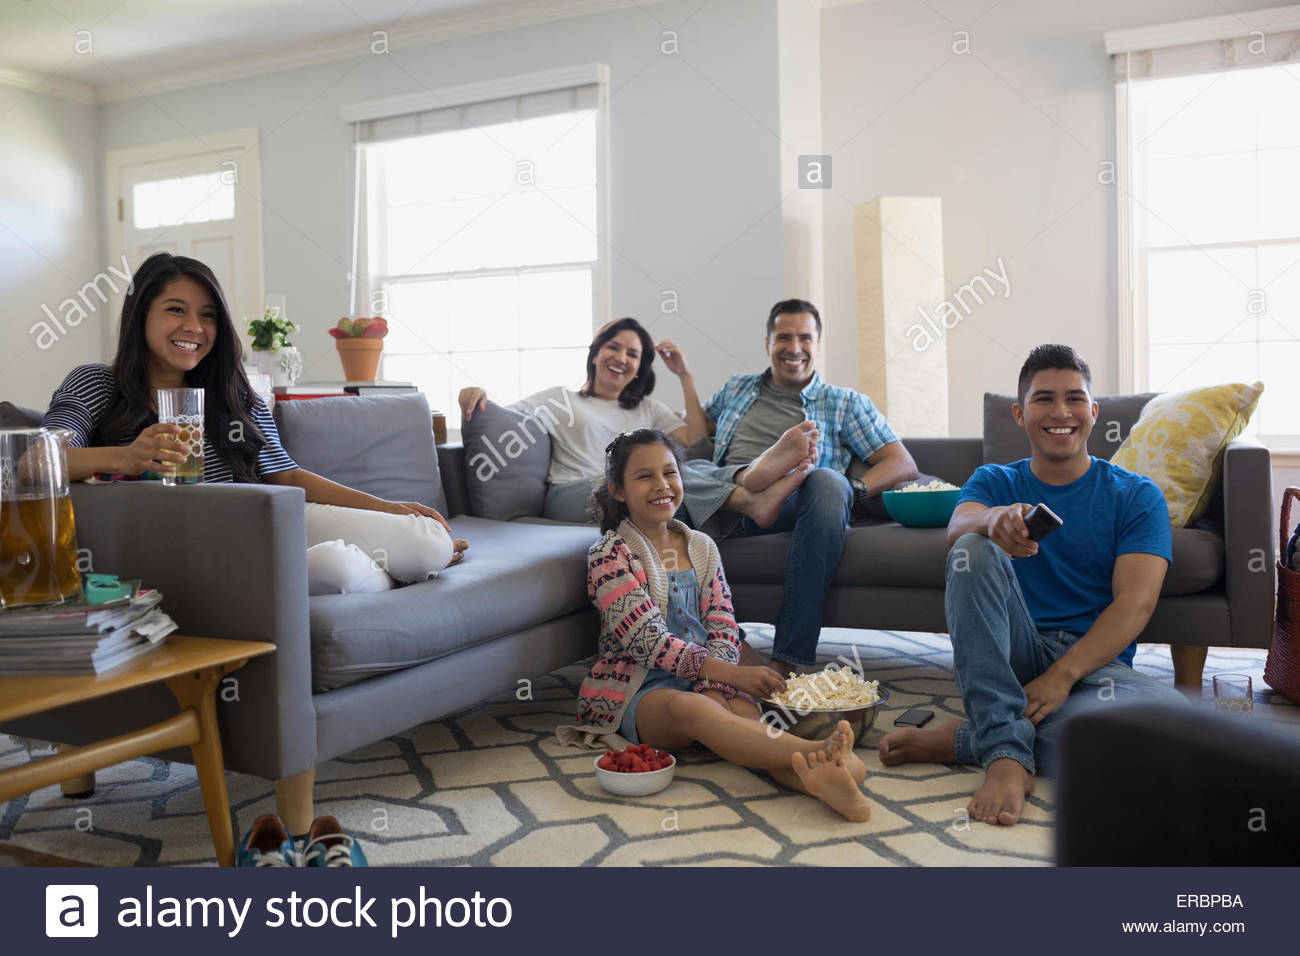 Family watching TV with popcorn in living room Stock Photo